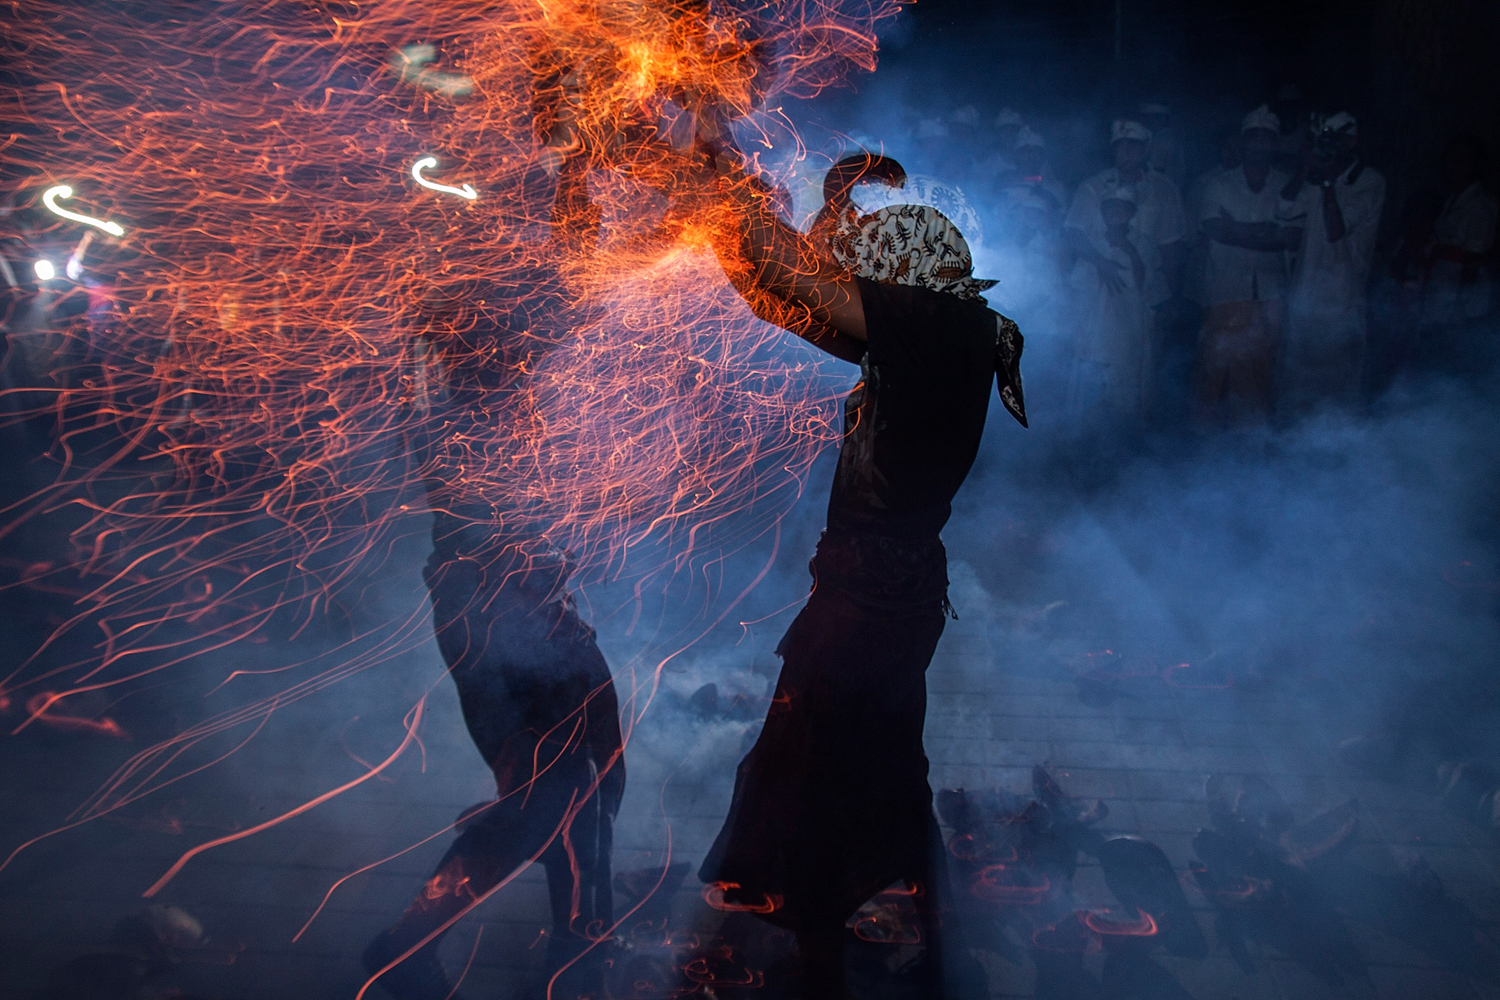 Oct. 19, 2013. Participants fight during fire war ceremony at Dalem Temple in Tuban, Kuta, Indonesia.